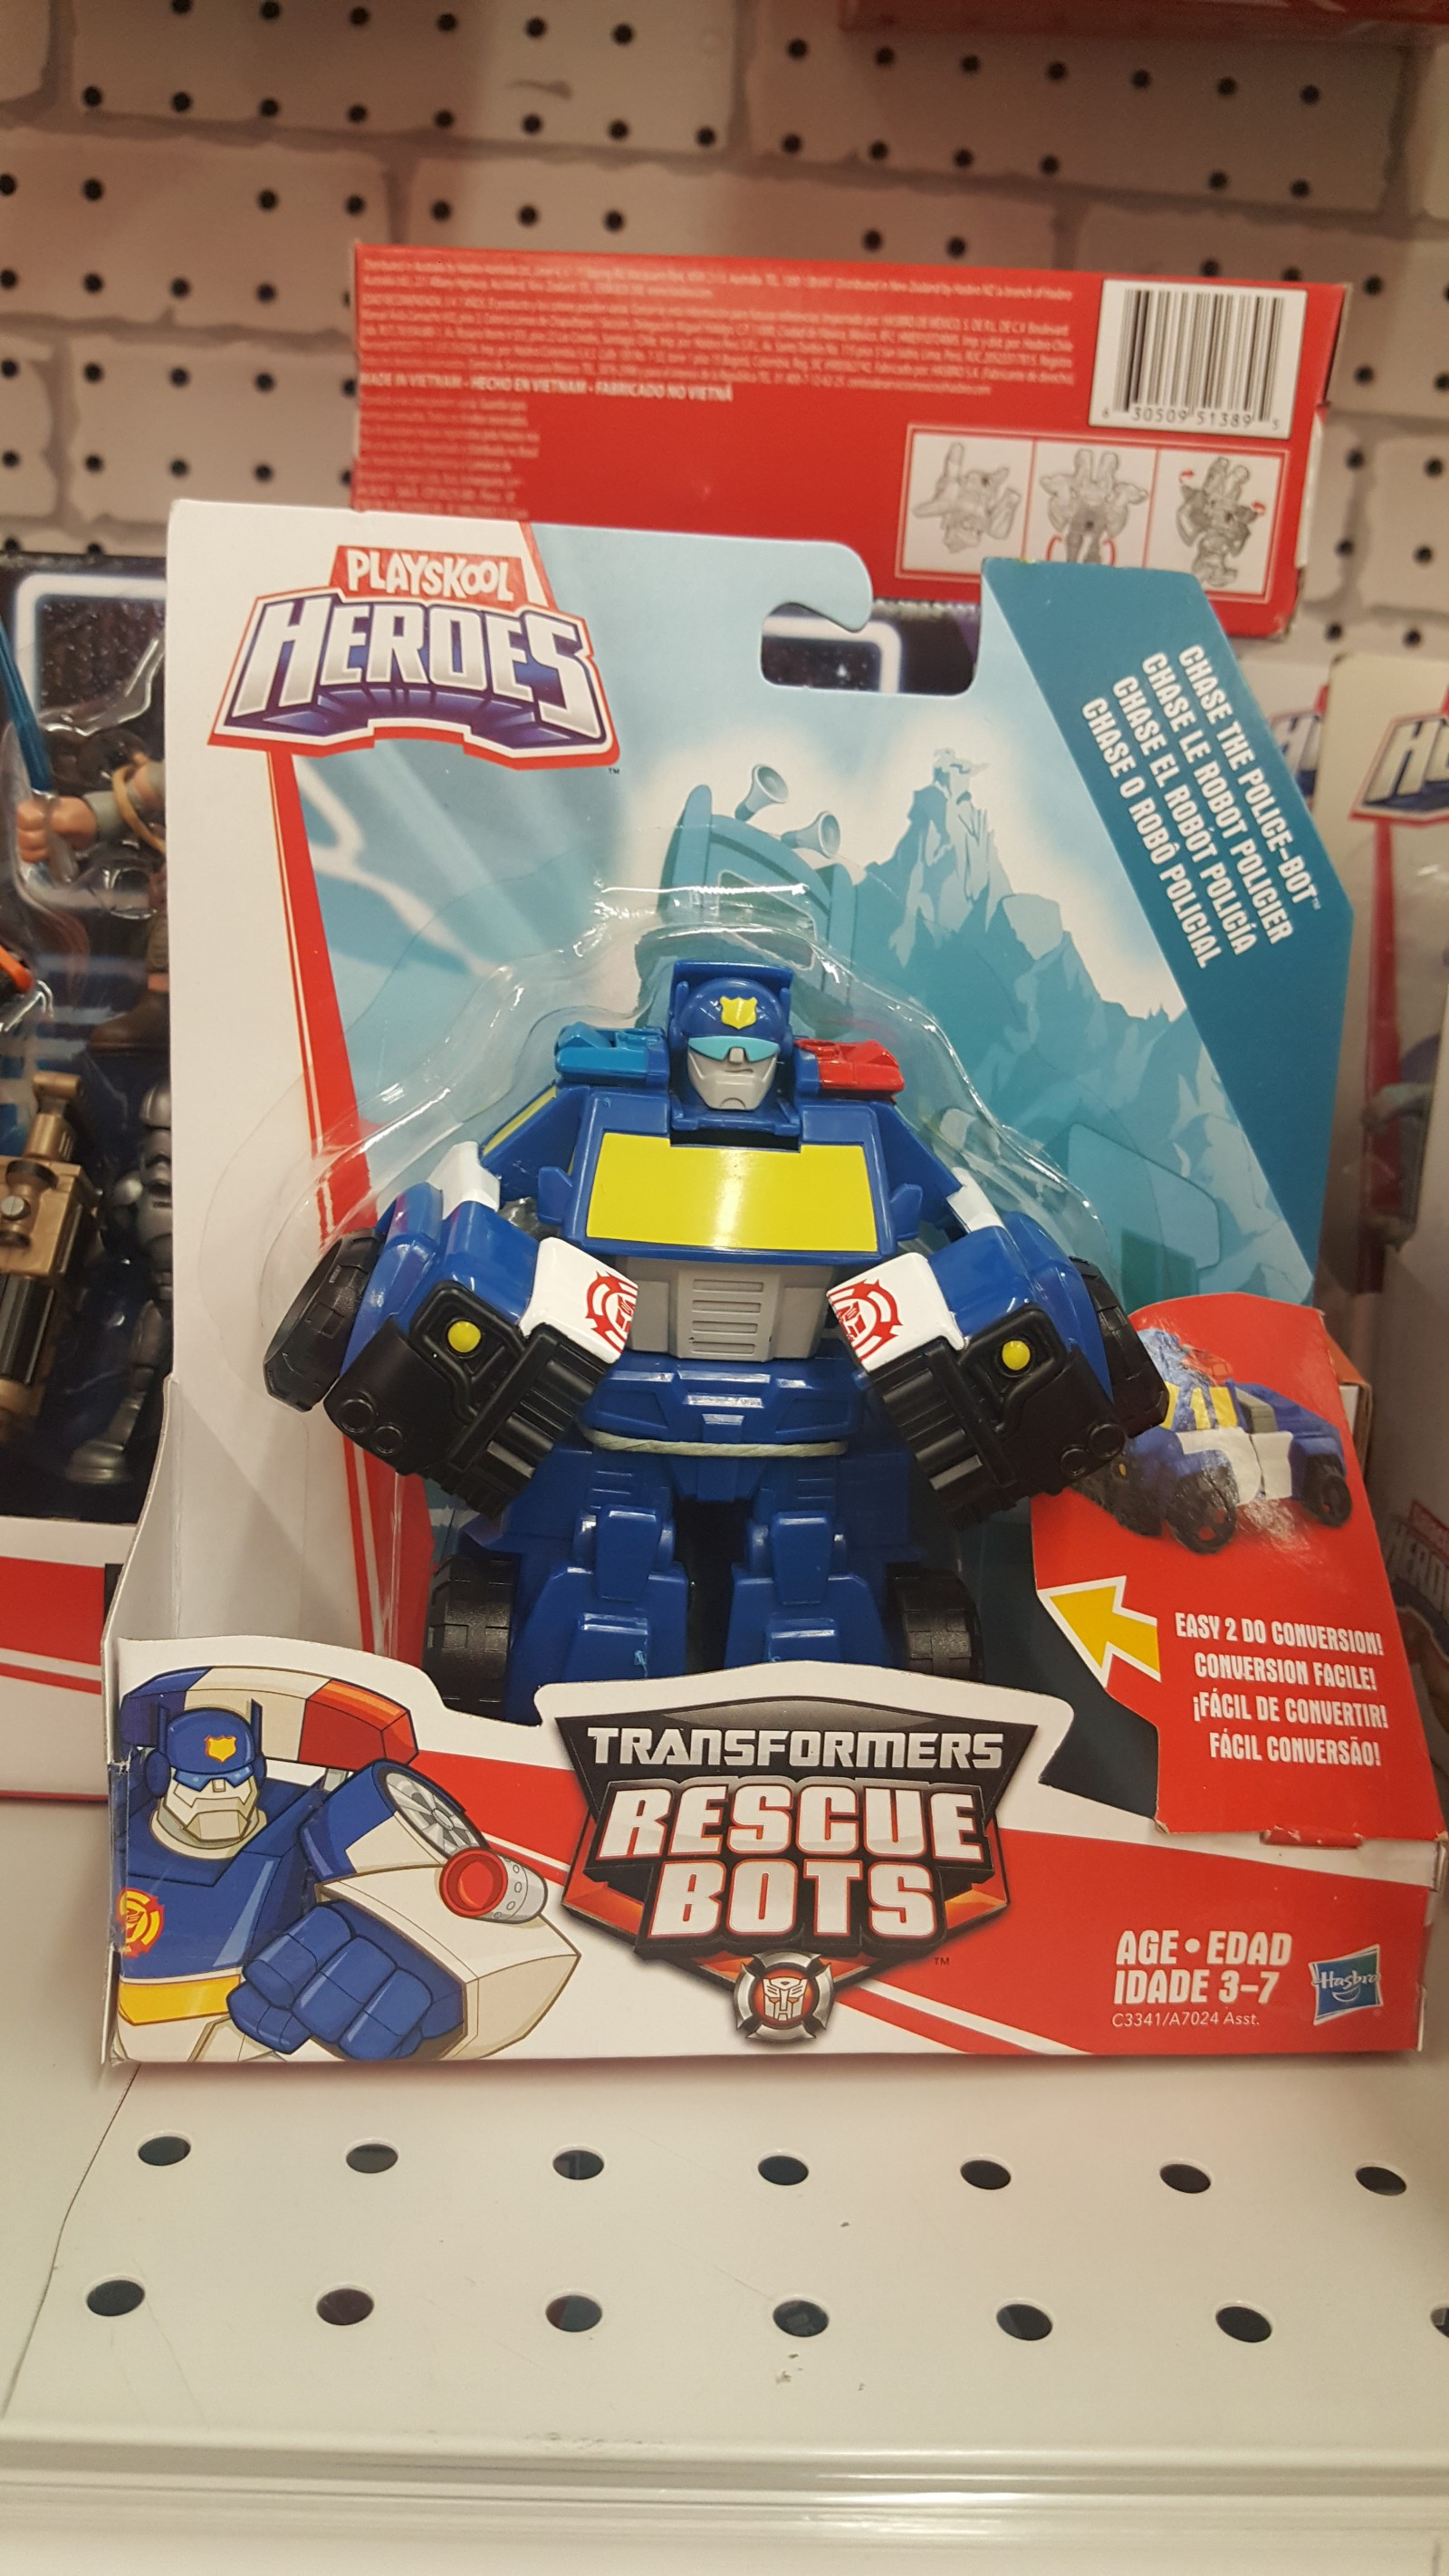 Transformers News: Single-Packed Rescue Bots Chase (Pick-Up Truck) Discovered at Retail